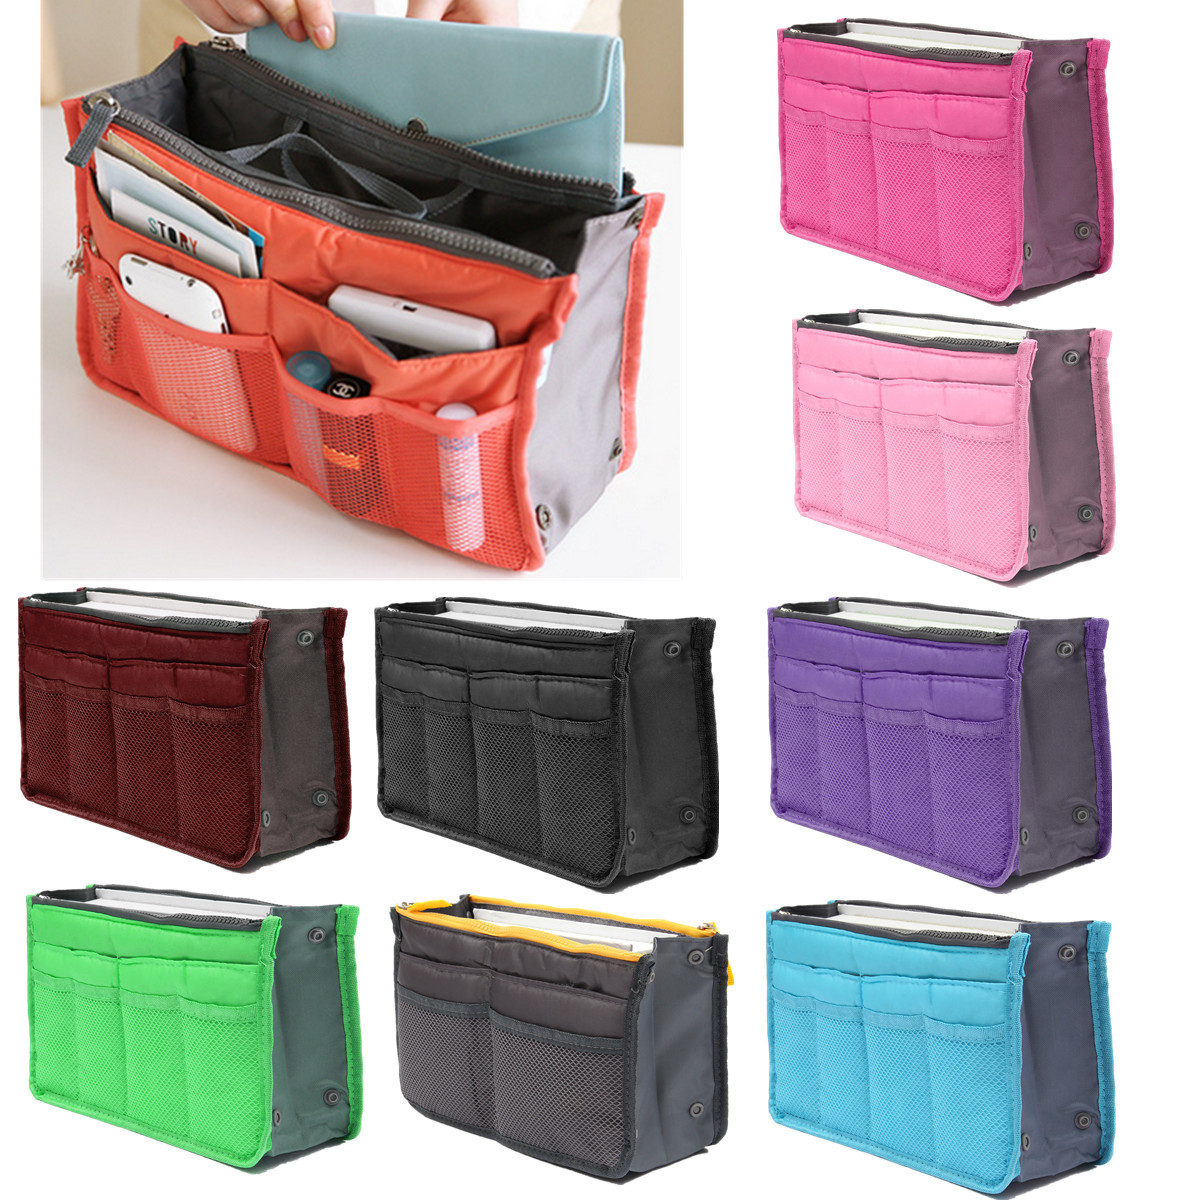 Large Travel Toiletry Tidy Wash Cosmetic Bag Compact Makeup Storage Case  Bathroom Mesh Organizer